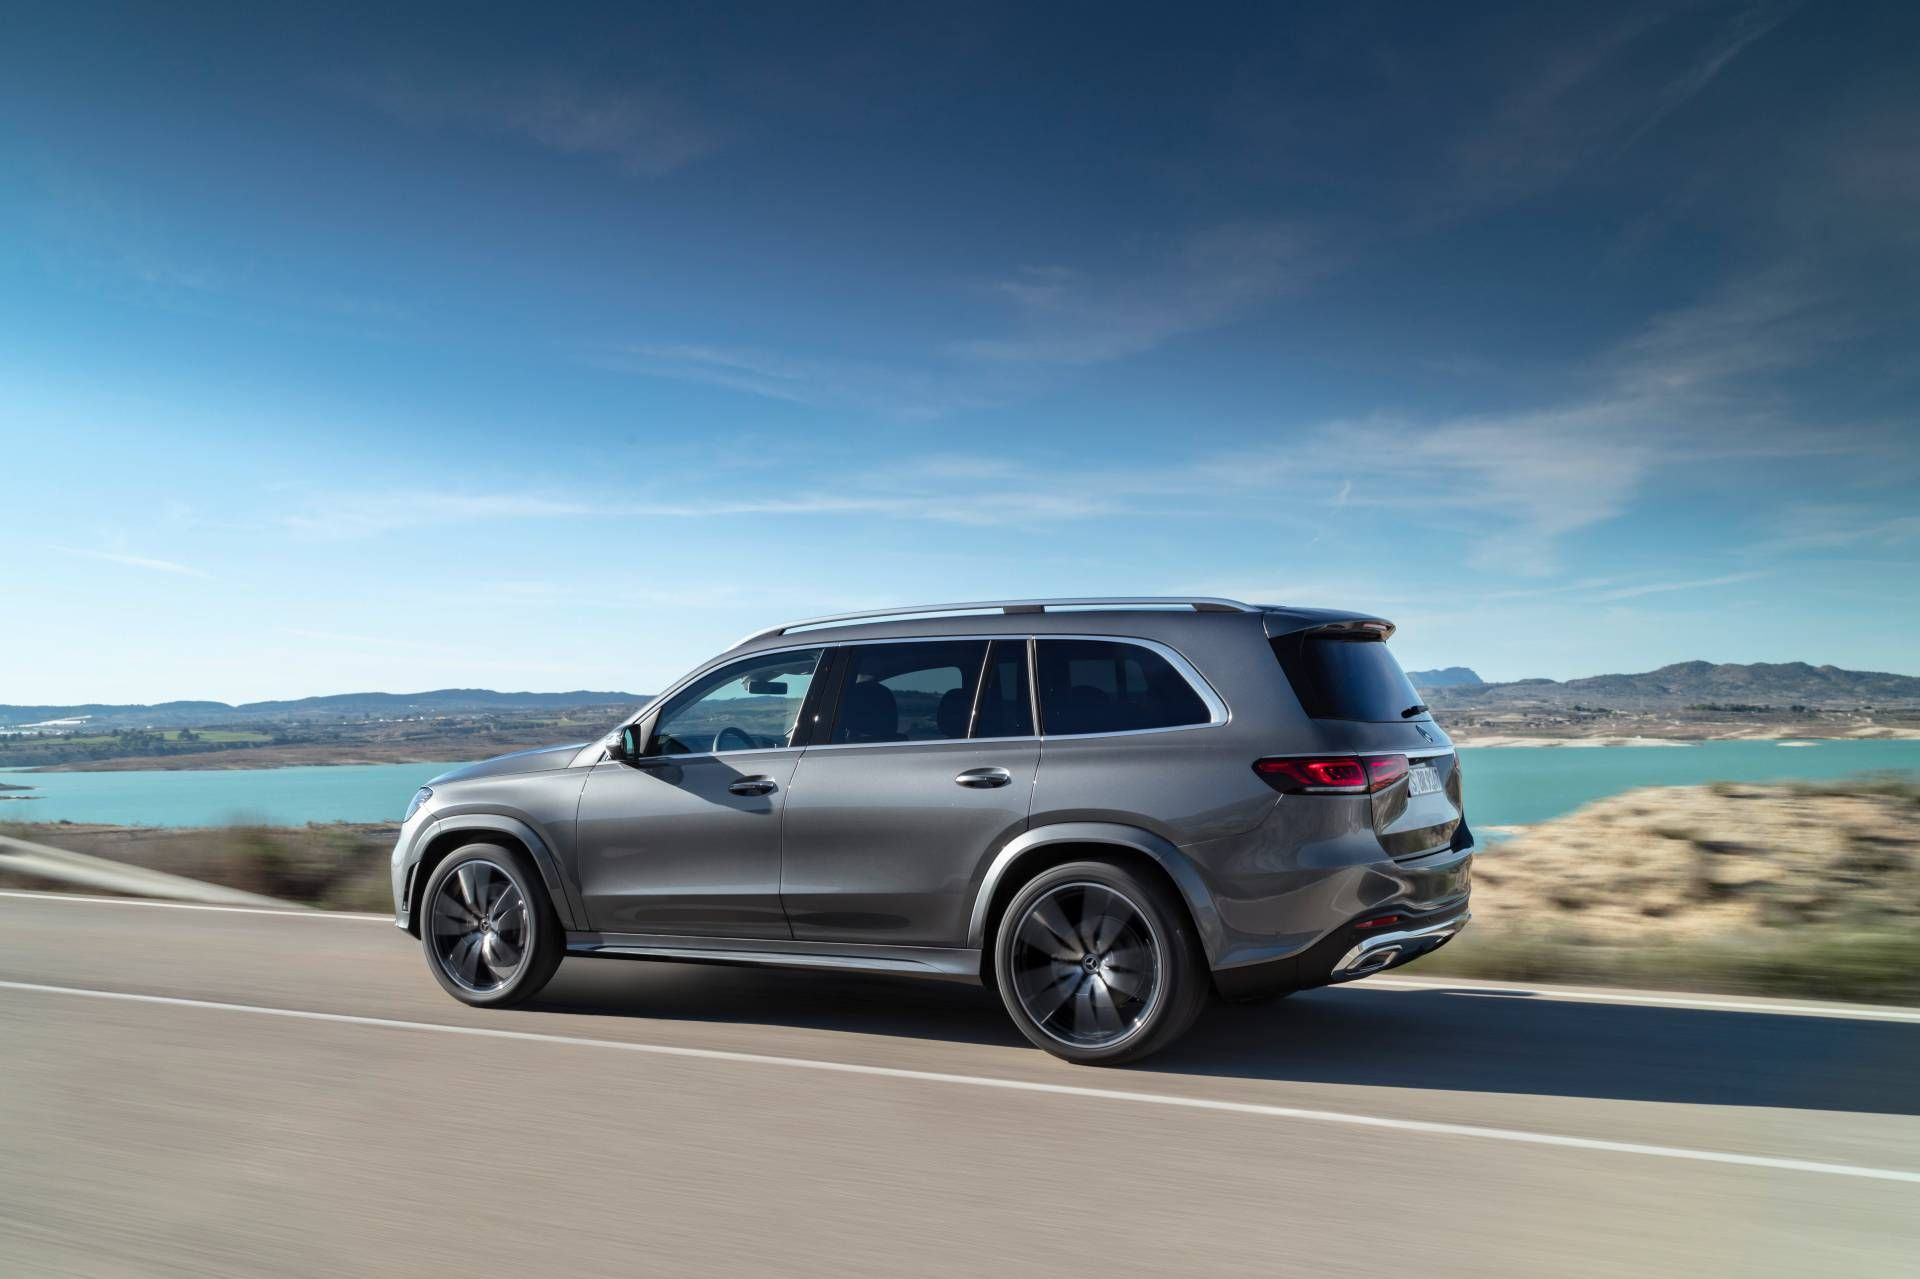 2020 Mercedes Gls Launches In Europe With Two Diesel Options Starts At 85 923 Carscoops Mercedes Benz Mercedes Mercedes Benz Amg